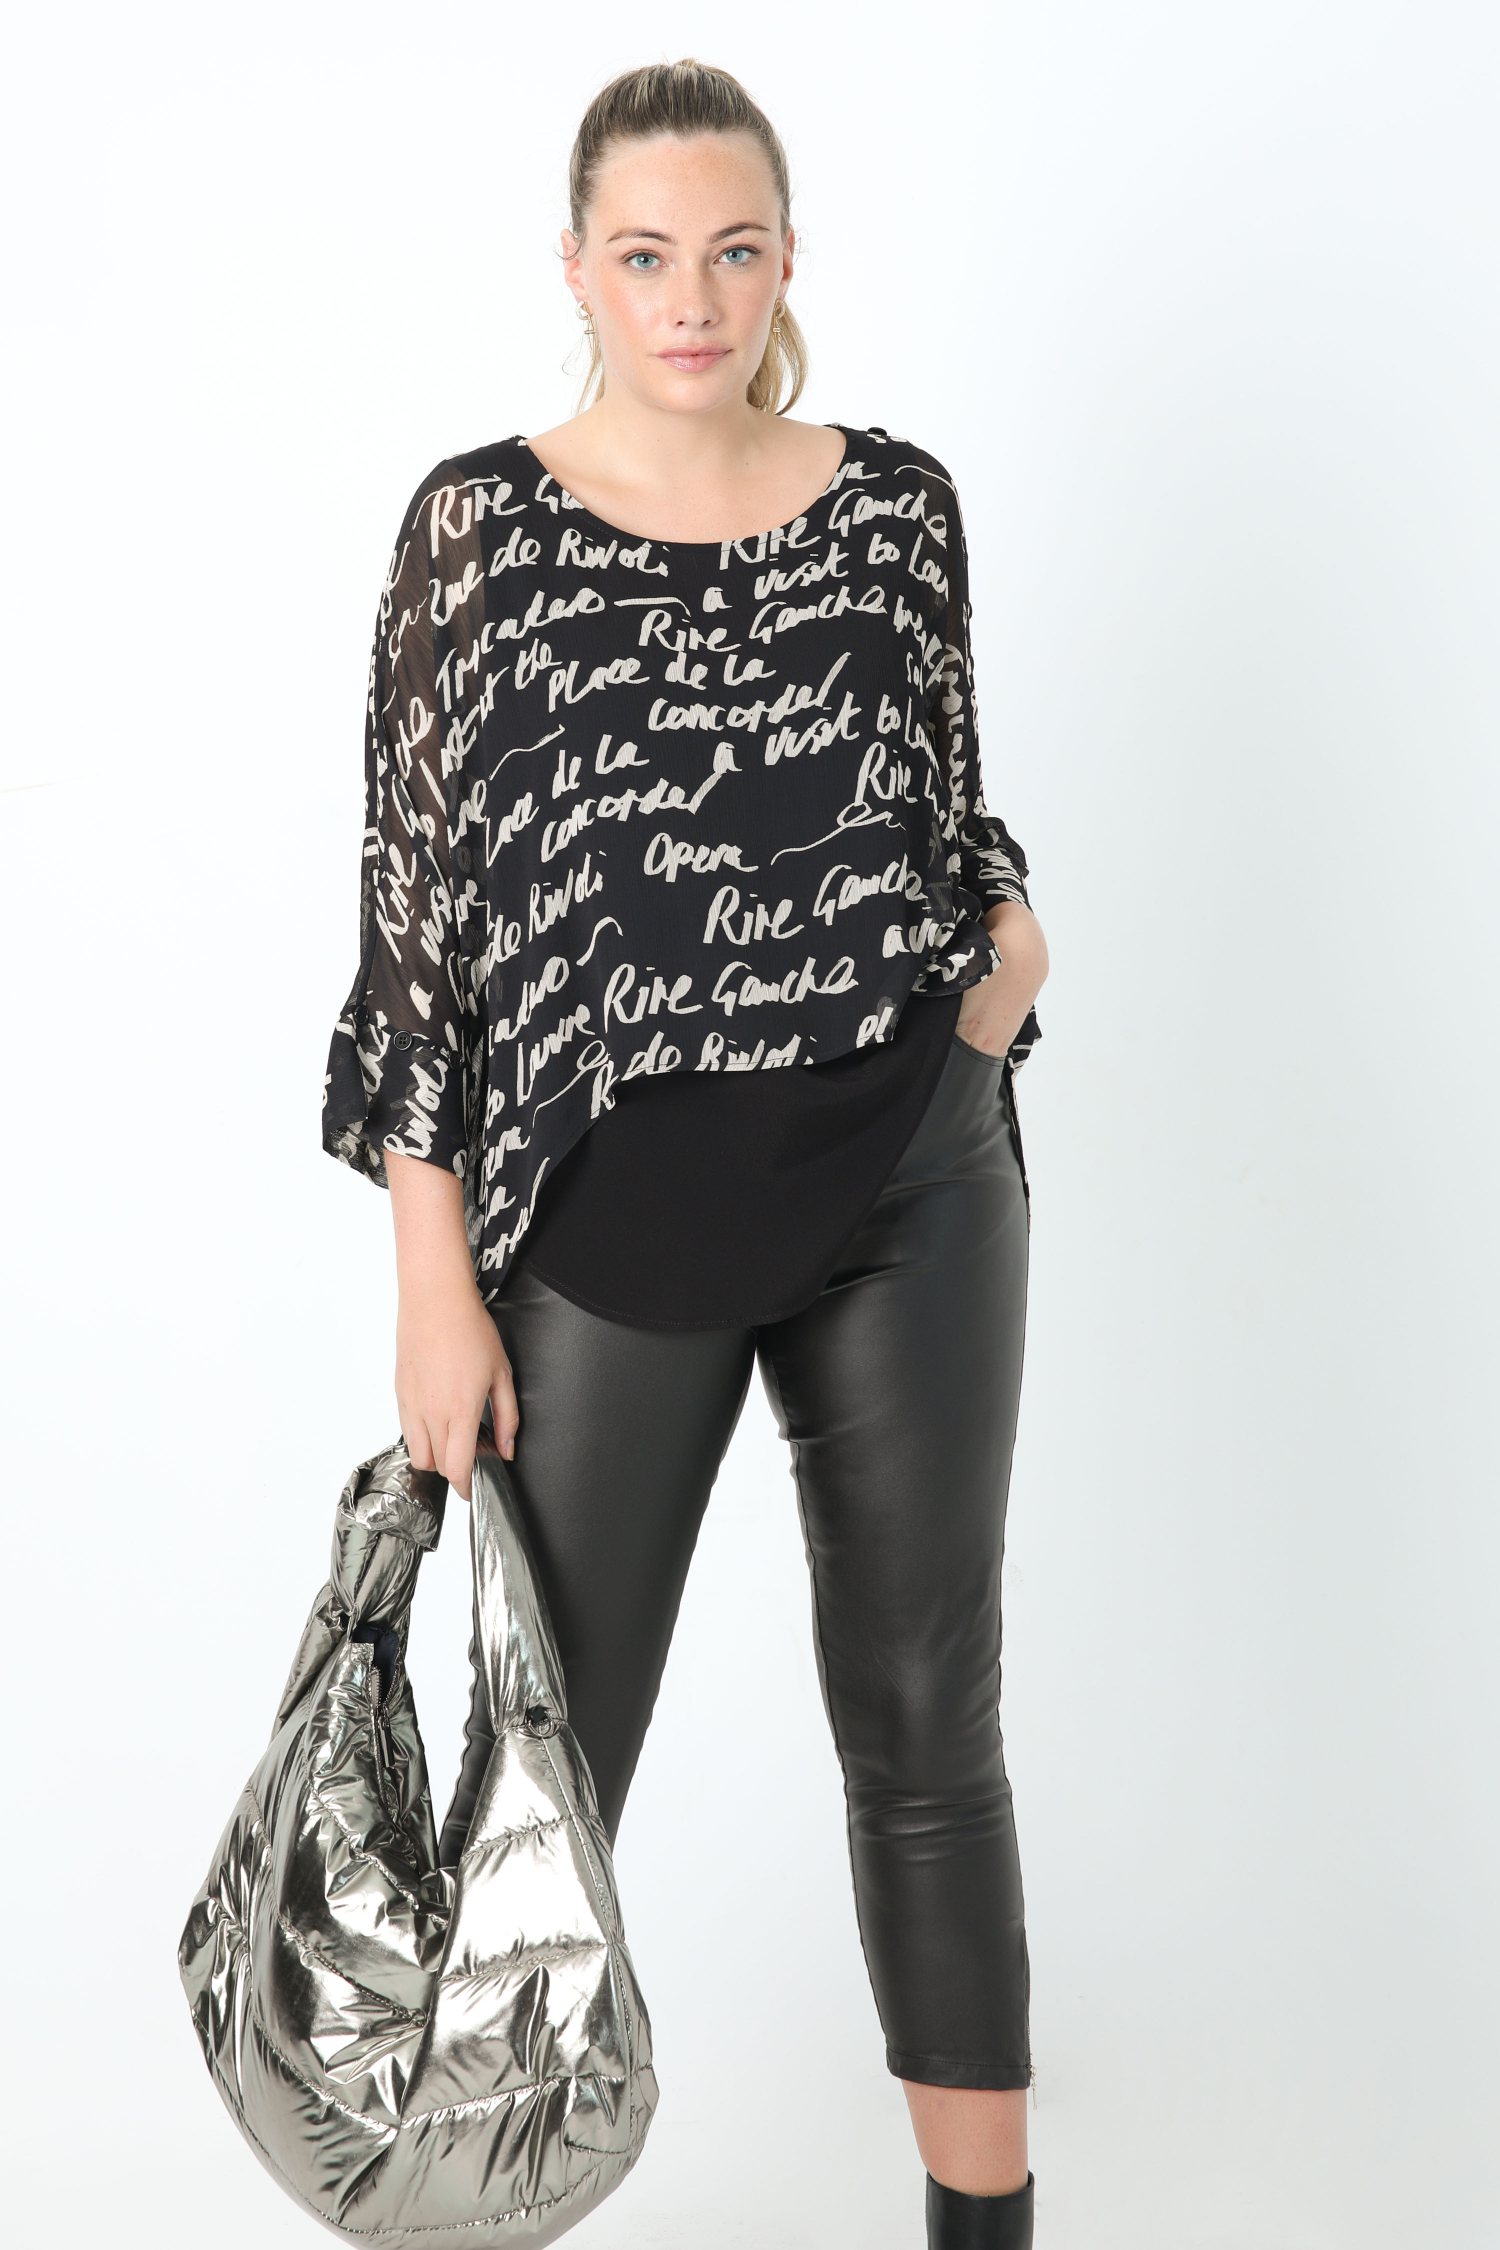 Veil overlay blouse with placed design